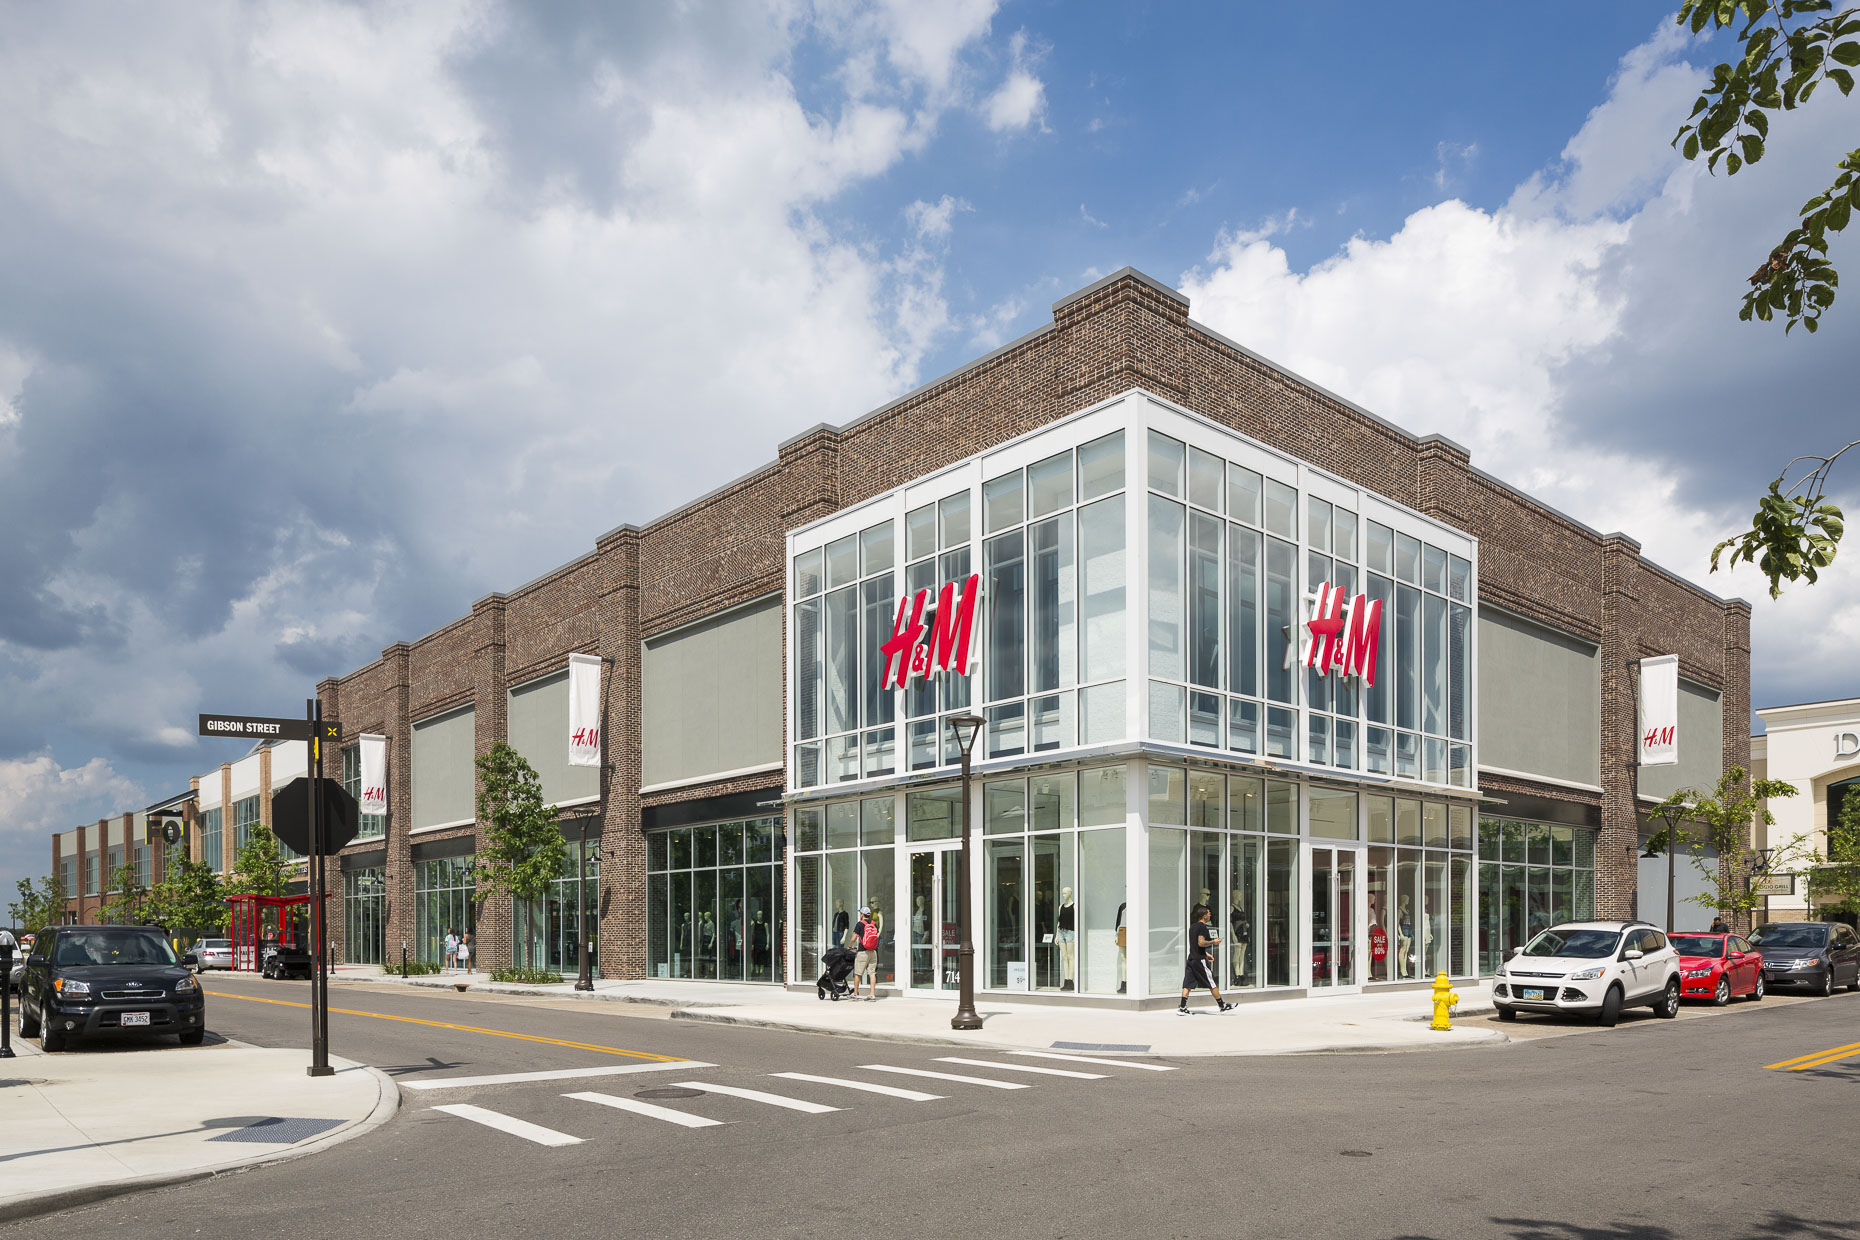 Liberty Town Center by HOAR Construction photographed by Lauren K Davis based in Columbus, Ohio